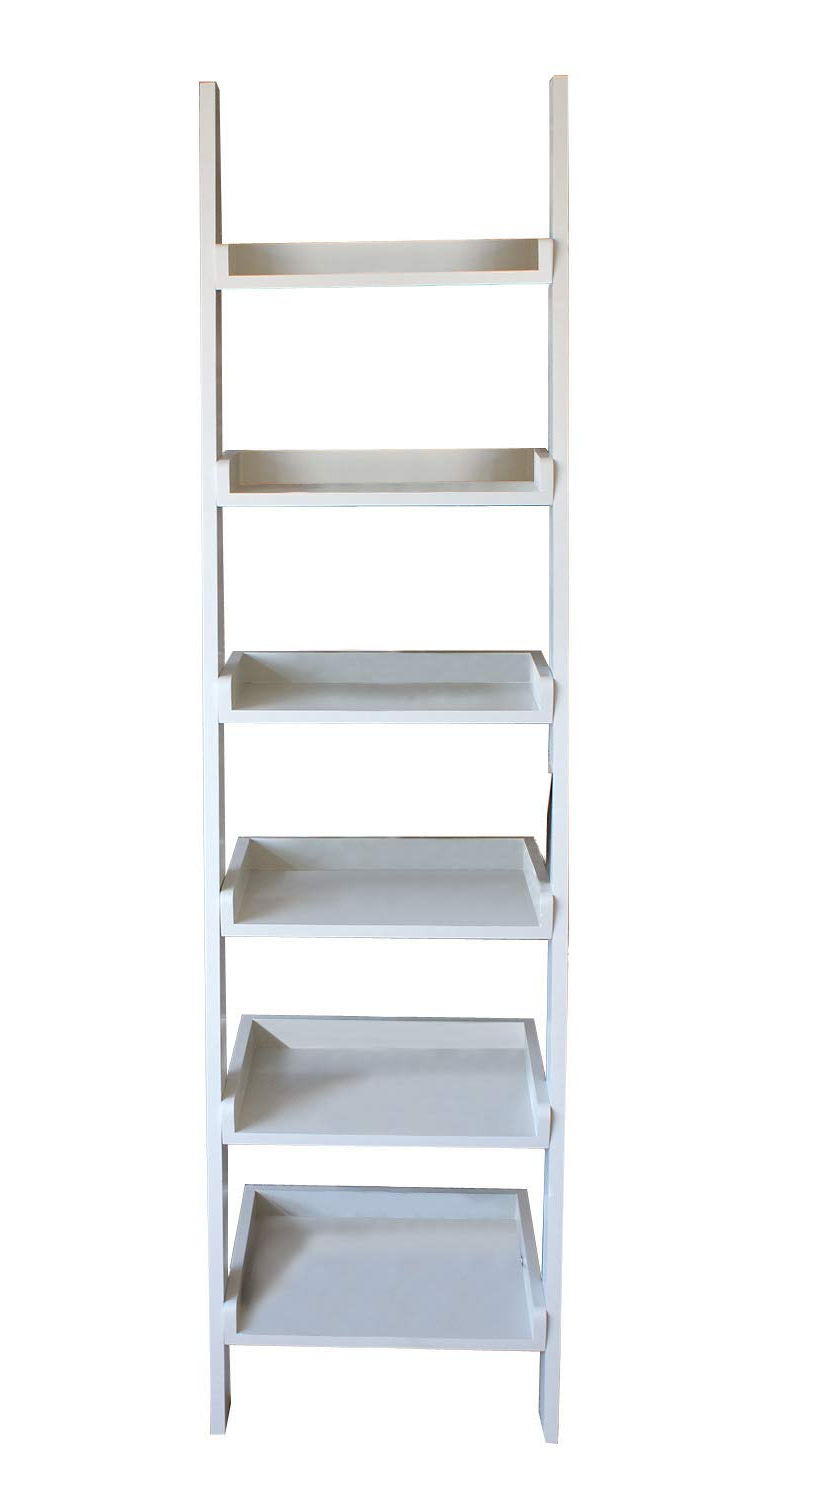 Most Recent Narrow Ladder Bookcases Intended For Casamore Gloucester Wooden Tall Narrow Ladder Shelf 6 Shelving Unit  Bookcase – Pearl White Painted (View 12 of 20)